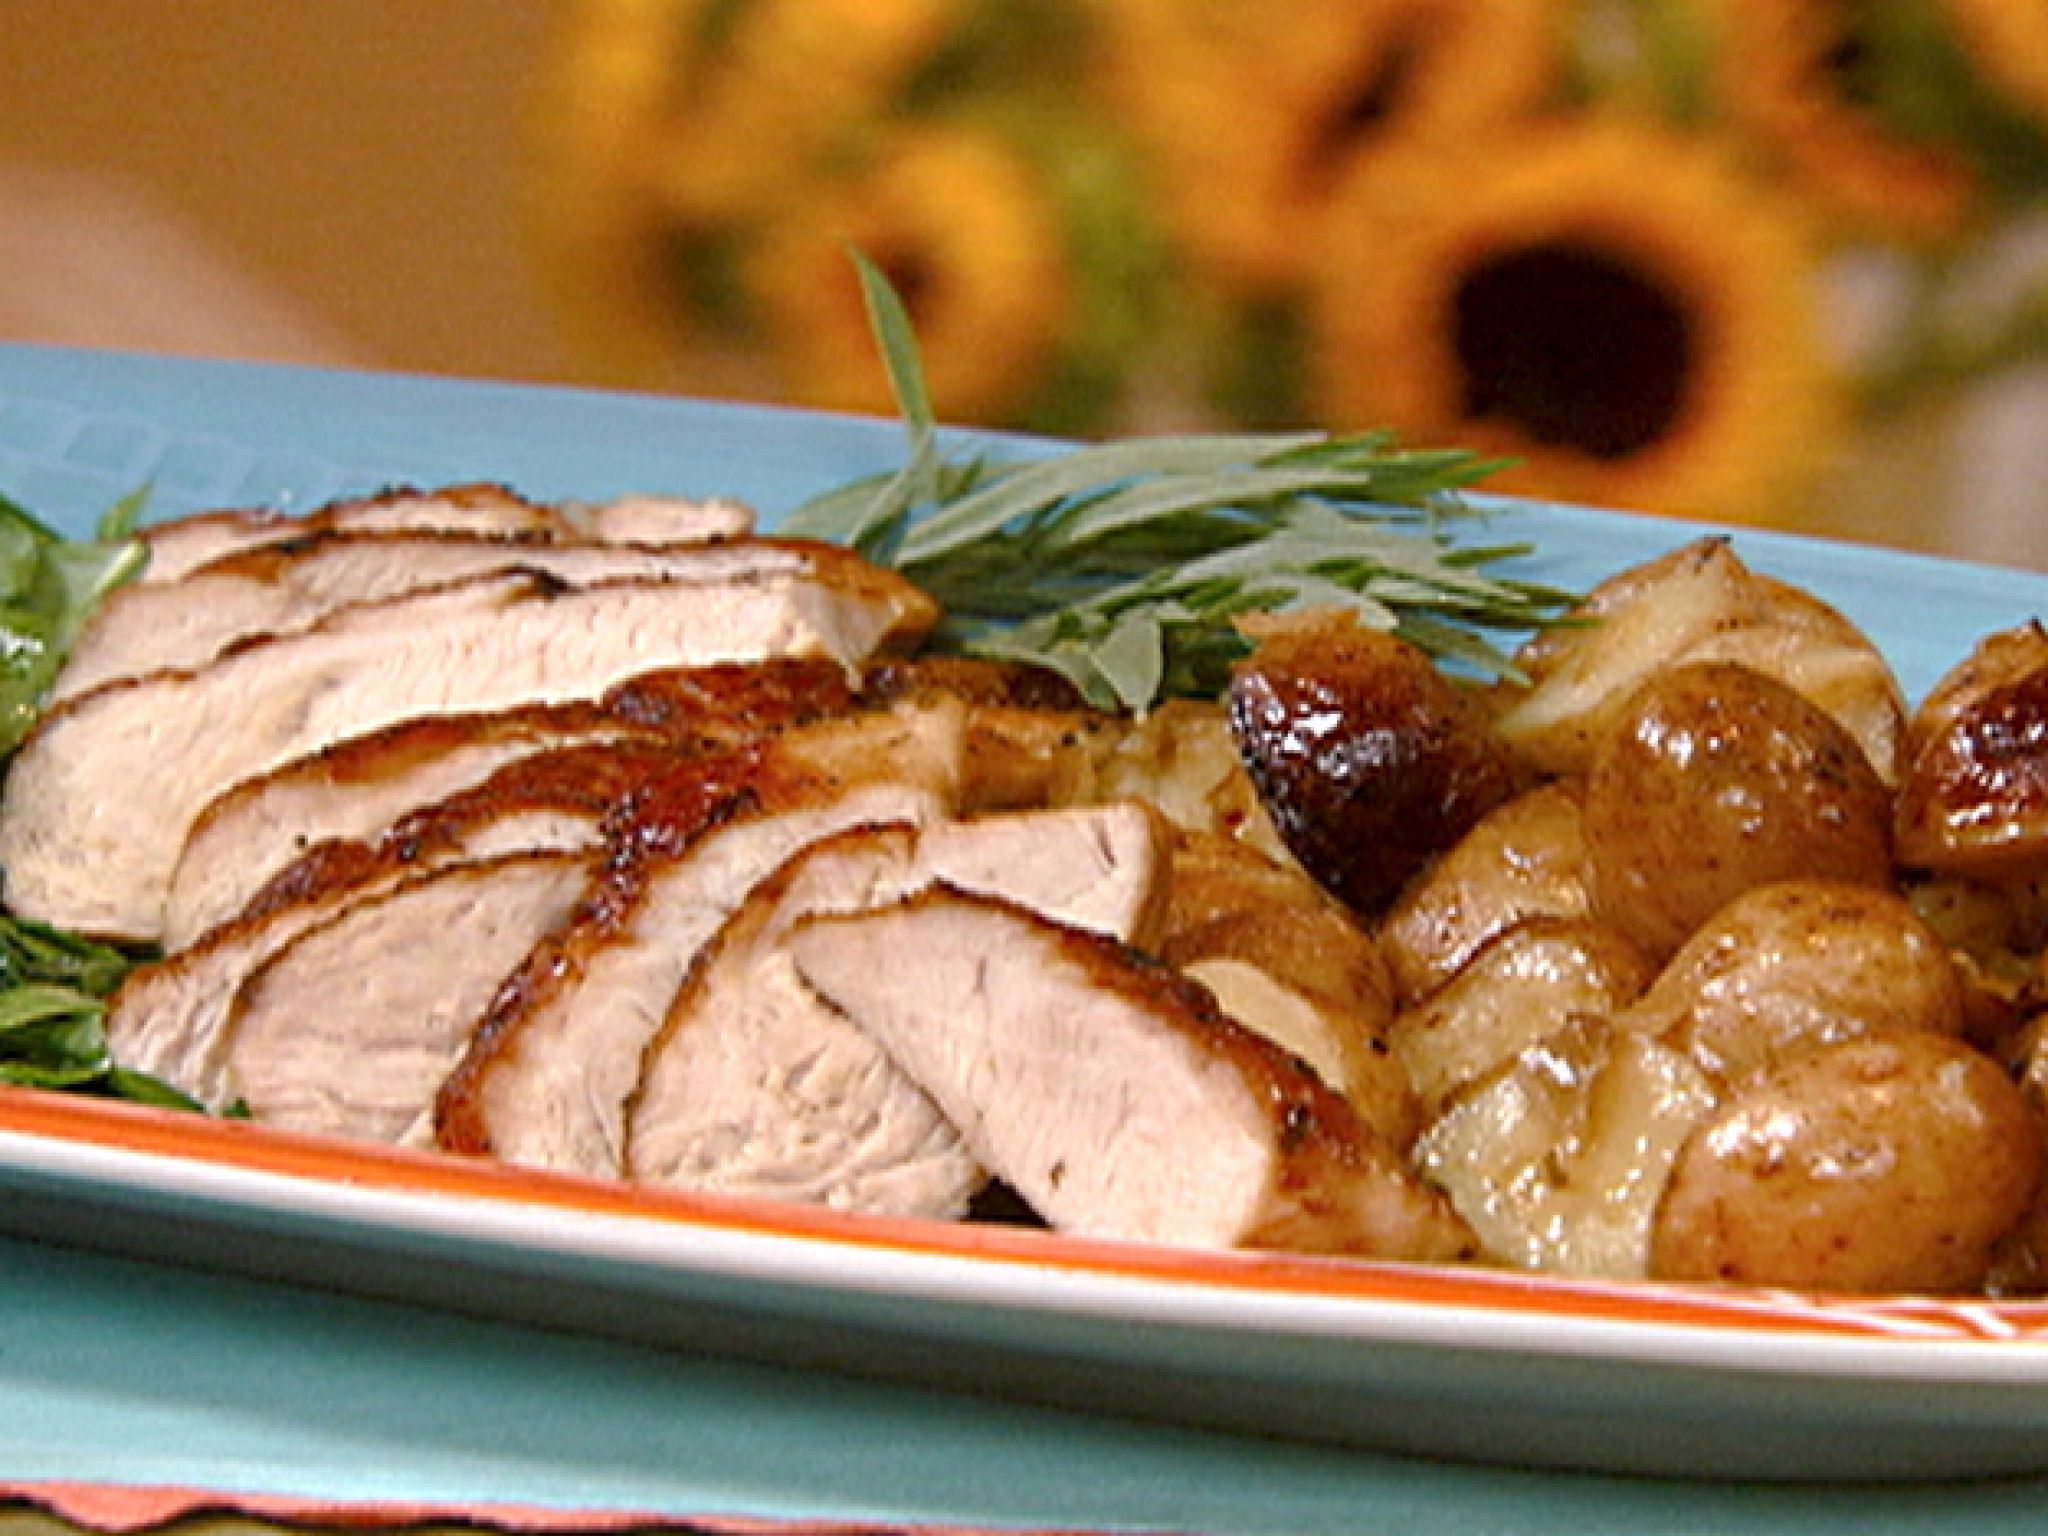 Roasted Turkey Tenderloin With New Potatoes And Tarragon Broth Recipe From  Robin Miller Via Foodwork